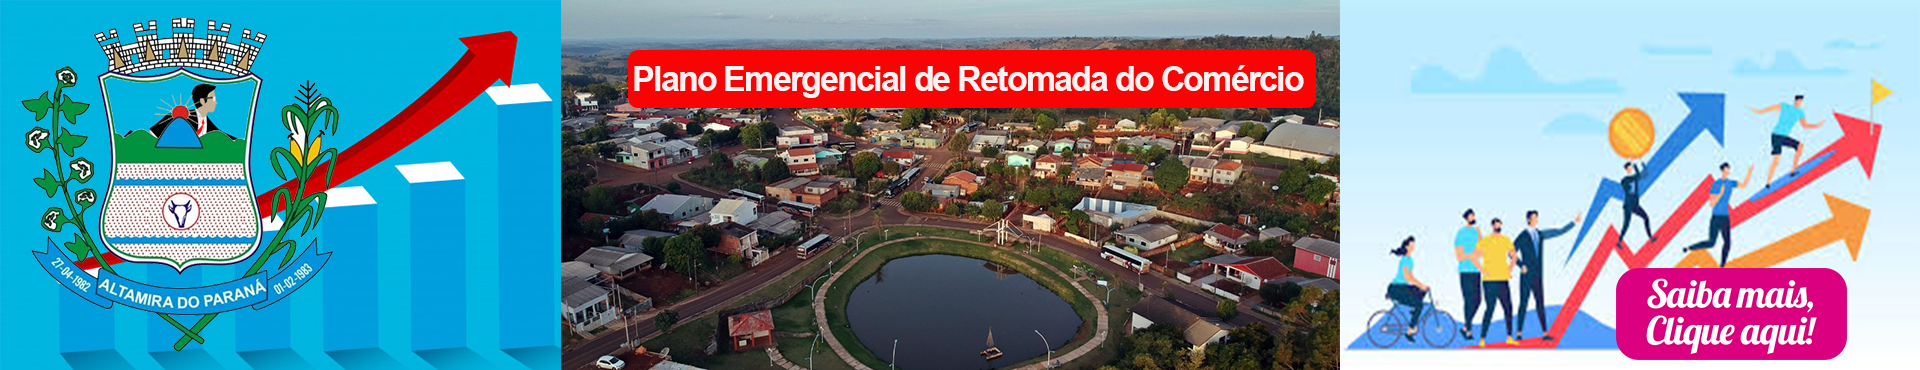 PLANO EMERGENCIAL RETOMADA COMÉRCIO LOCAL